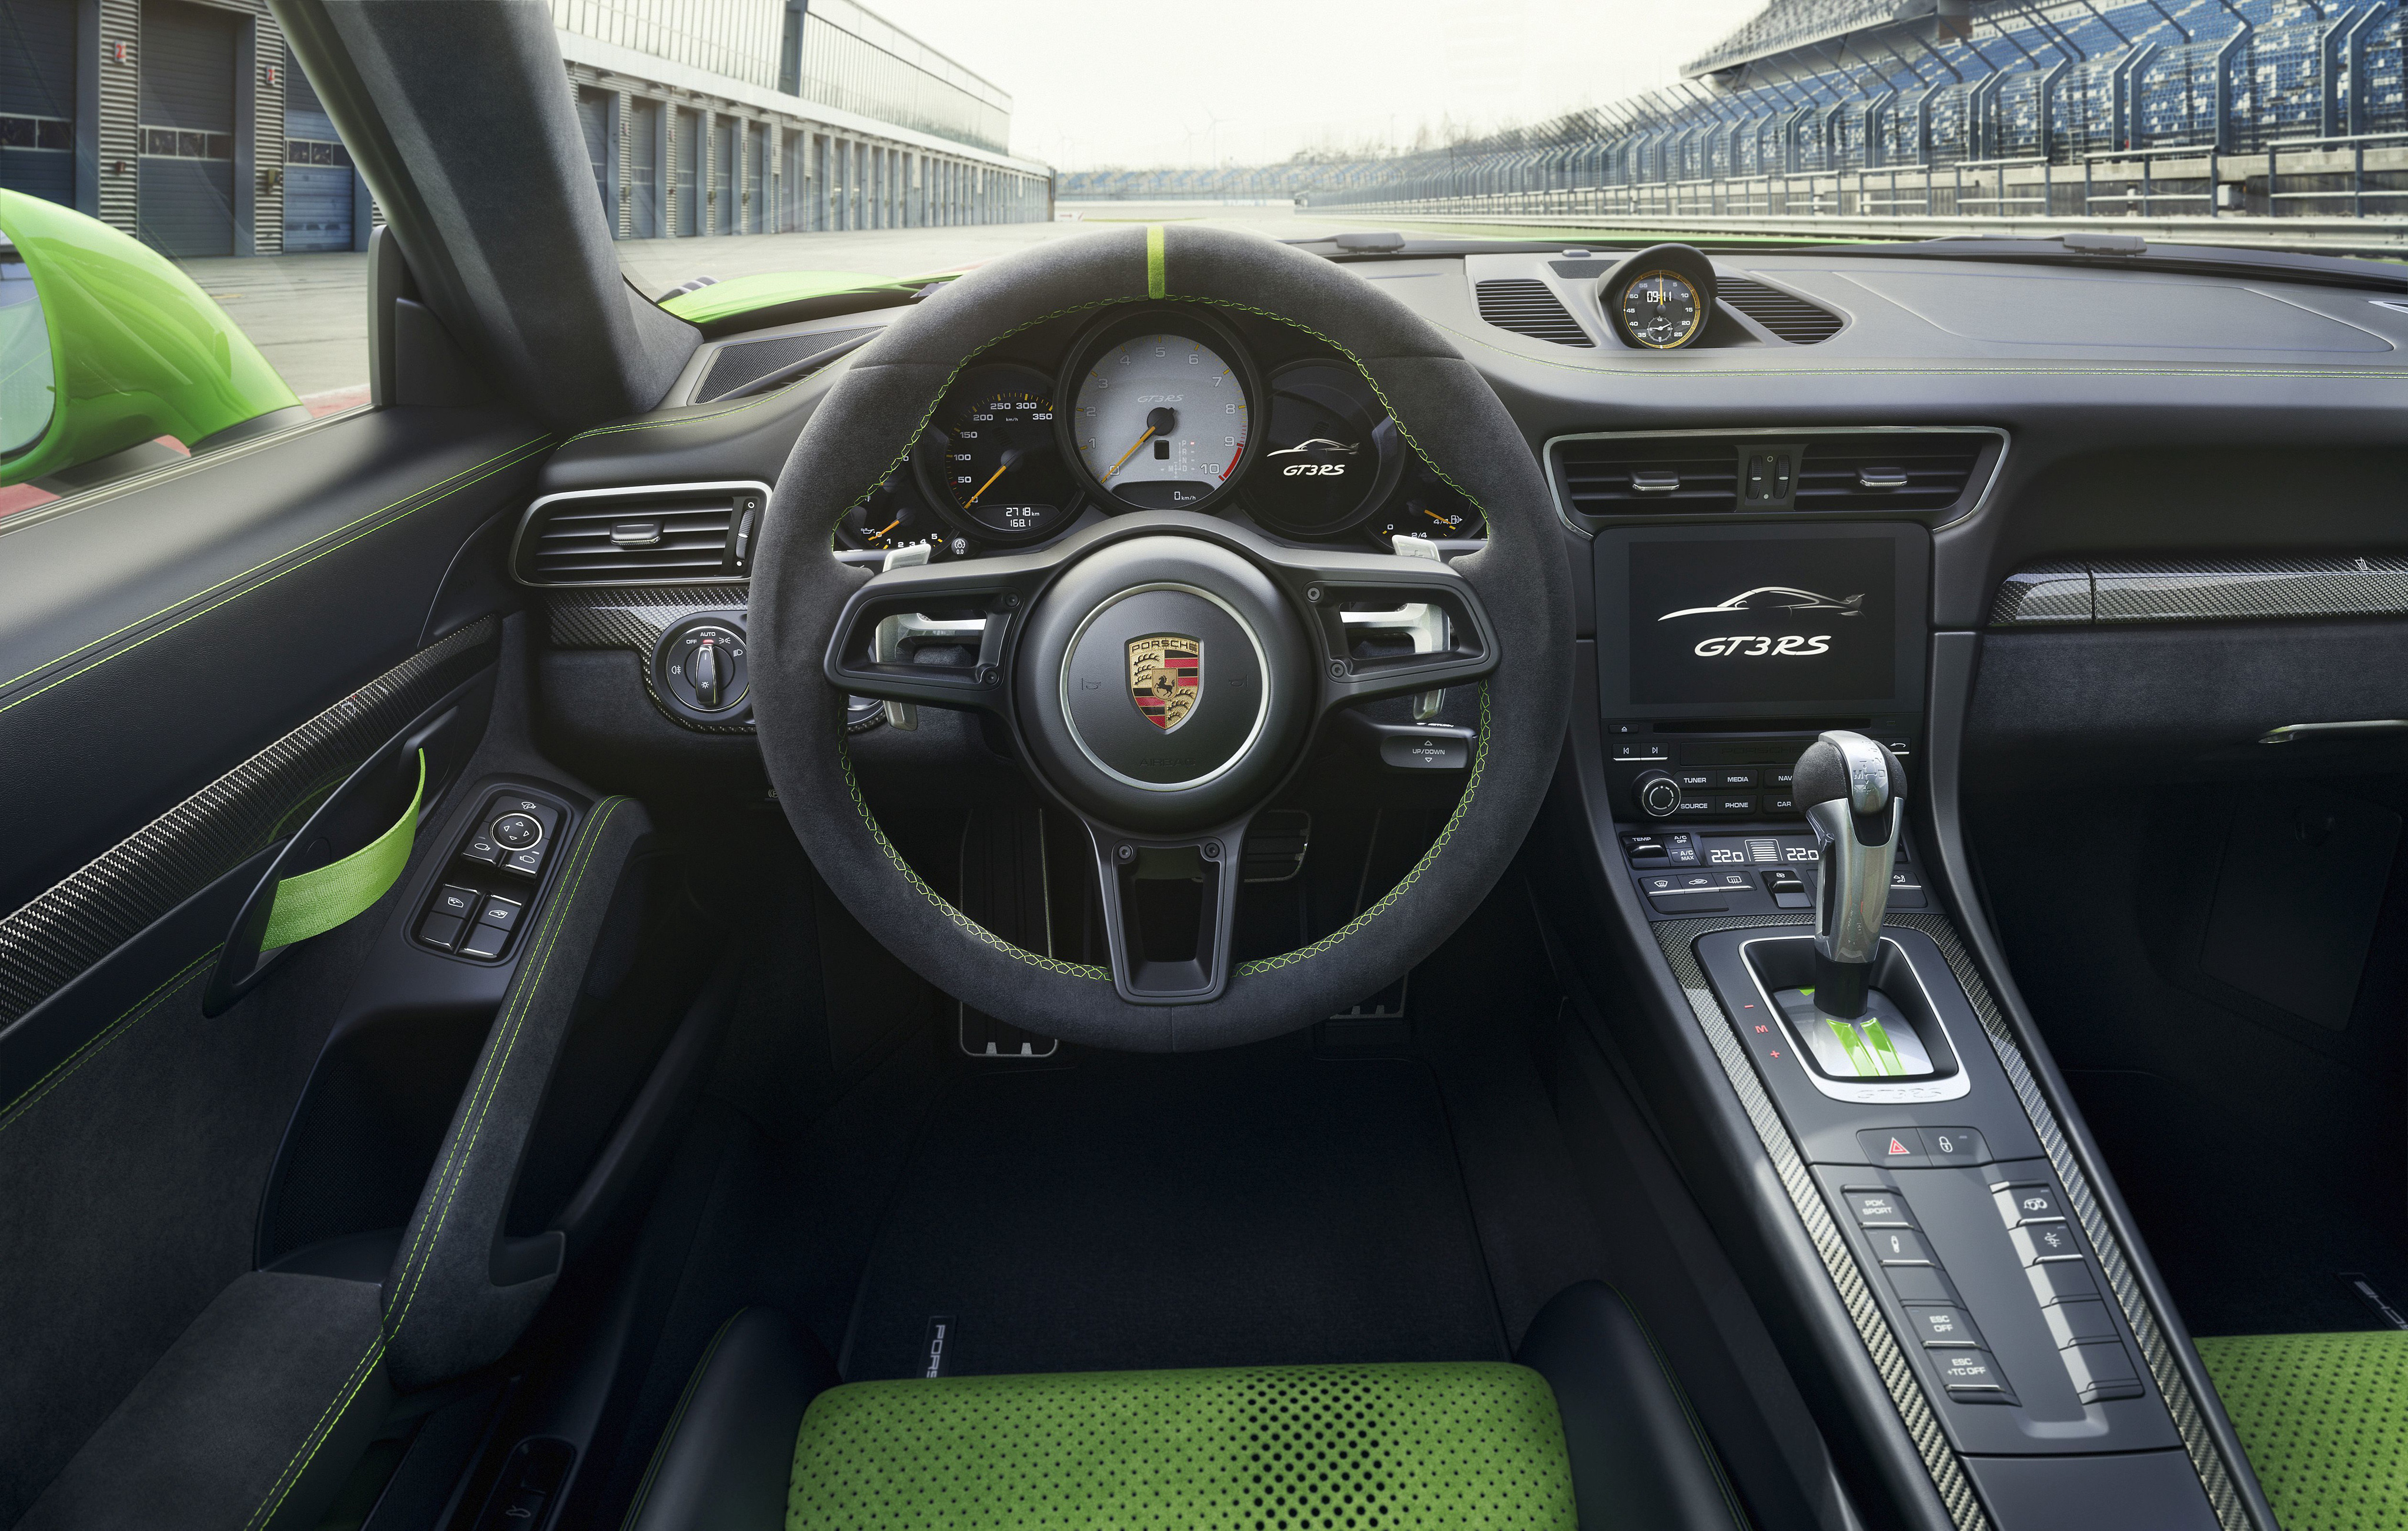 1920x1080 Porsche 911 Gt3 Rs 2018 Interior Laptop Full Hd 1080p Hd 4k Wallpapers Images Backgrounds Photos And Pictures